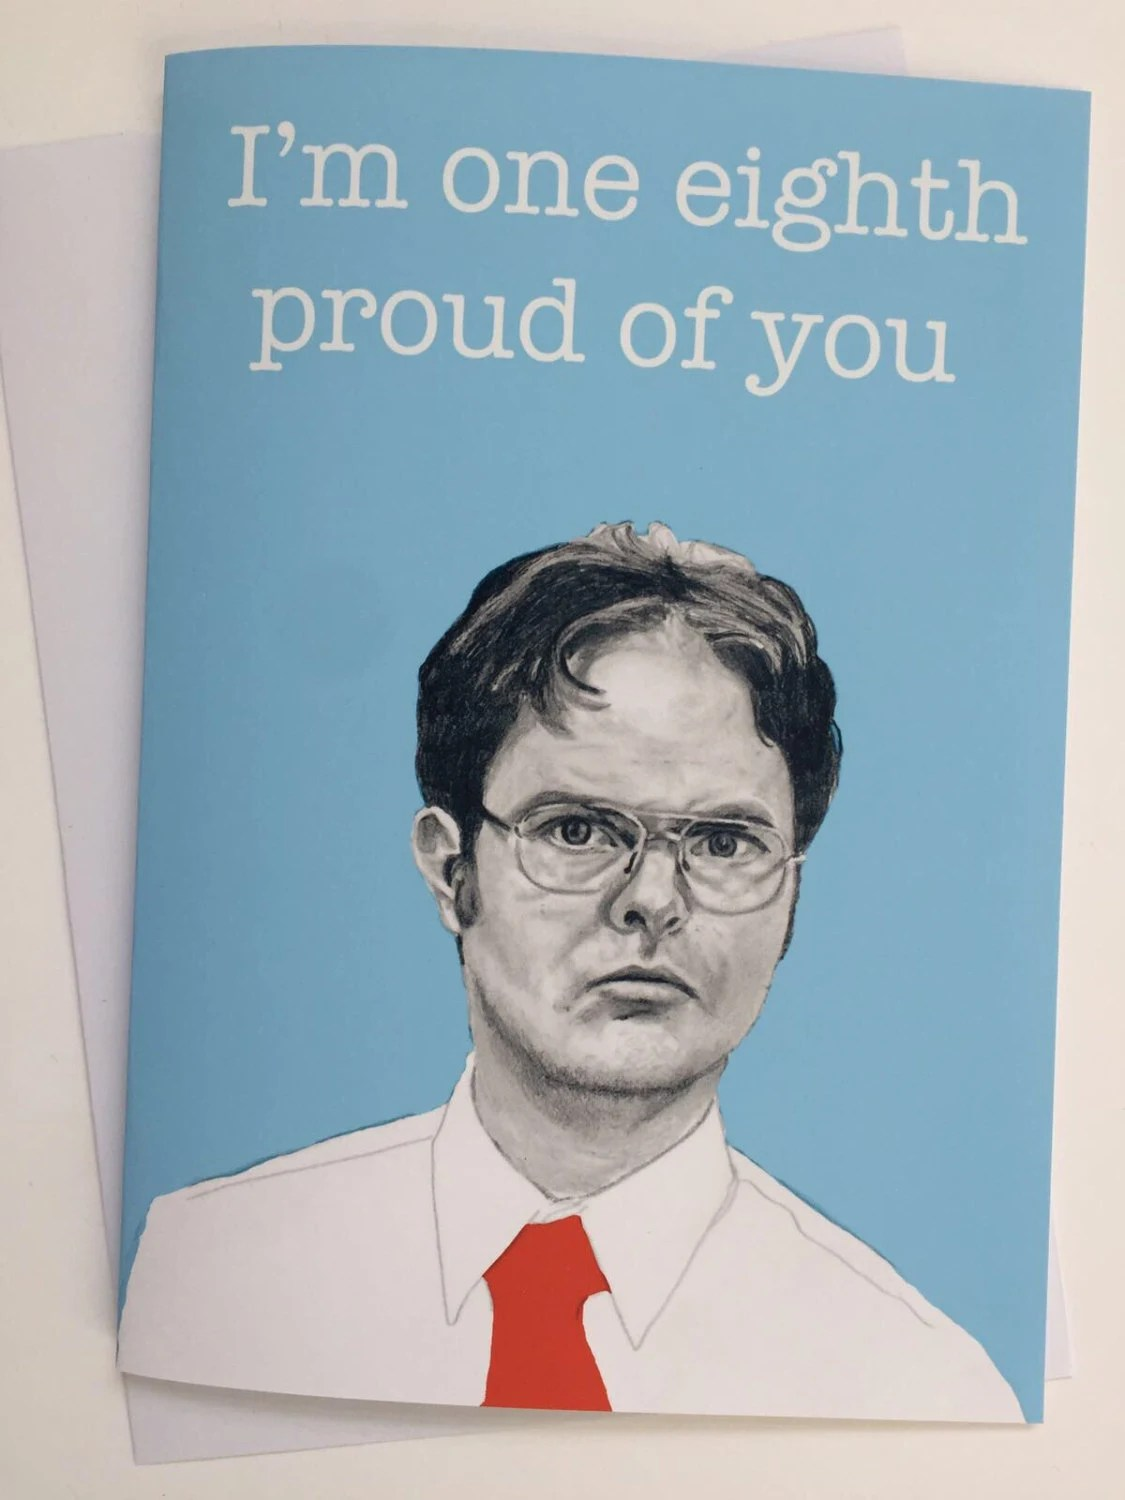 graphic regarding Dwight Schrute Id Badge Printable identify Dwight Schrute Identification Badge - Yr of Refreshing Drinking water